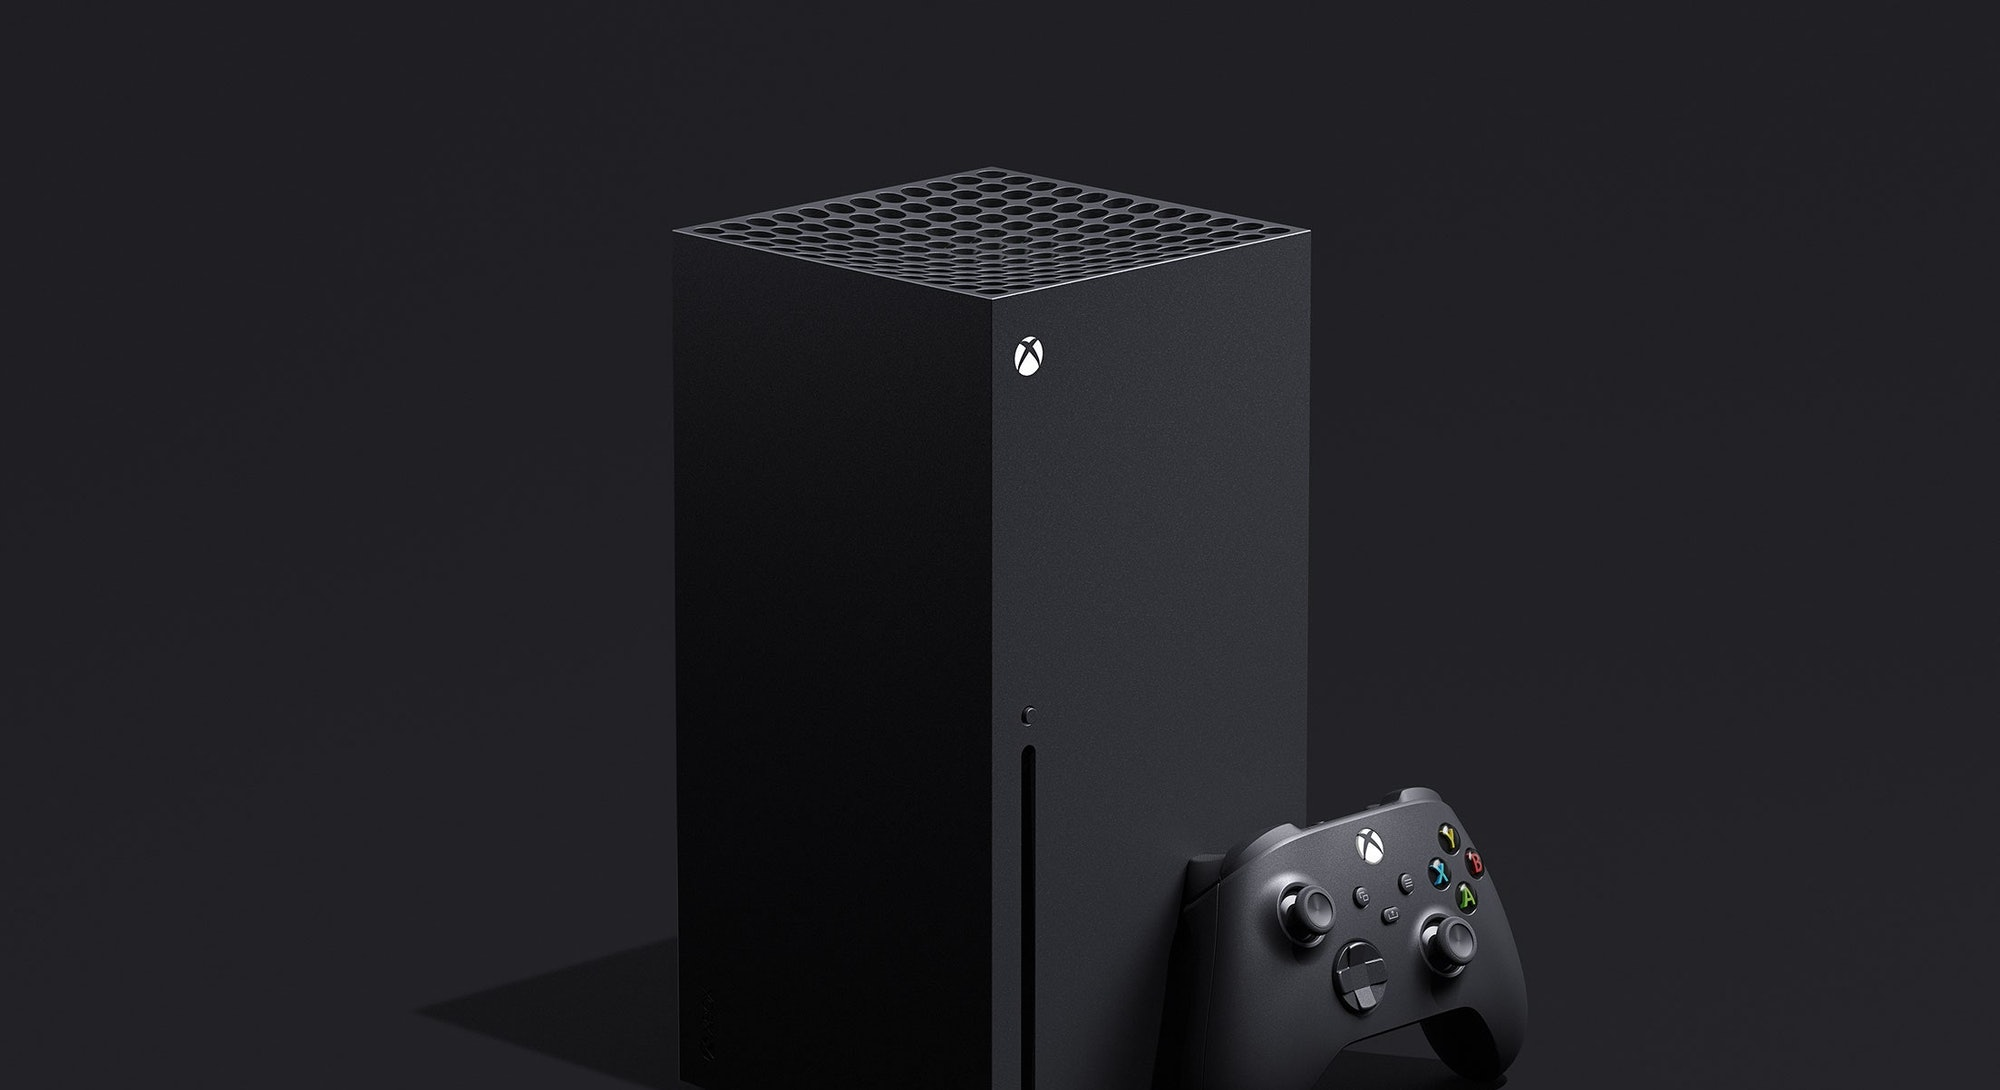 front and side view of Xbox Series X console and controller